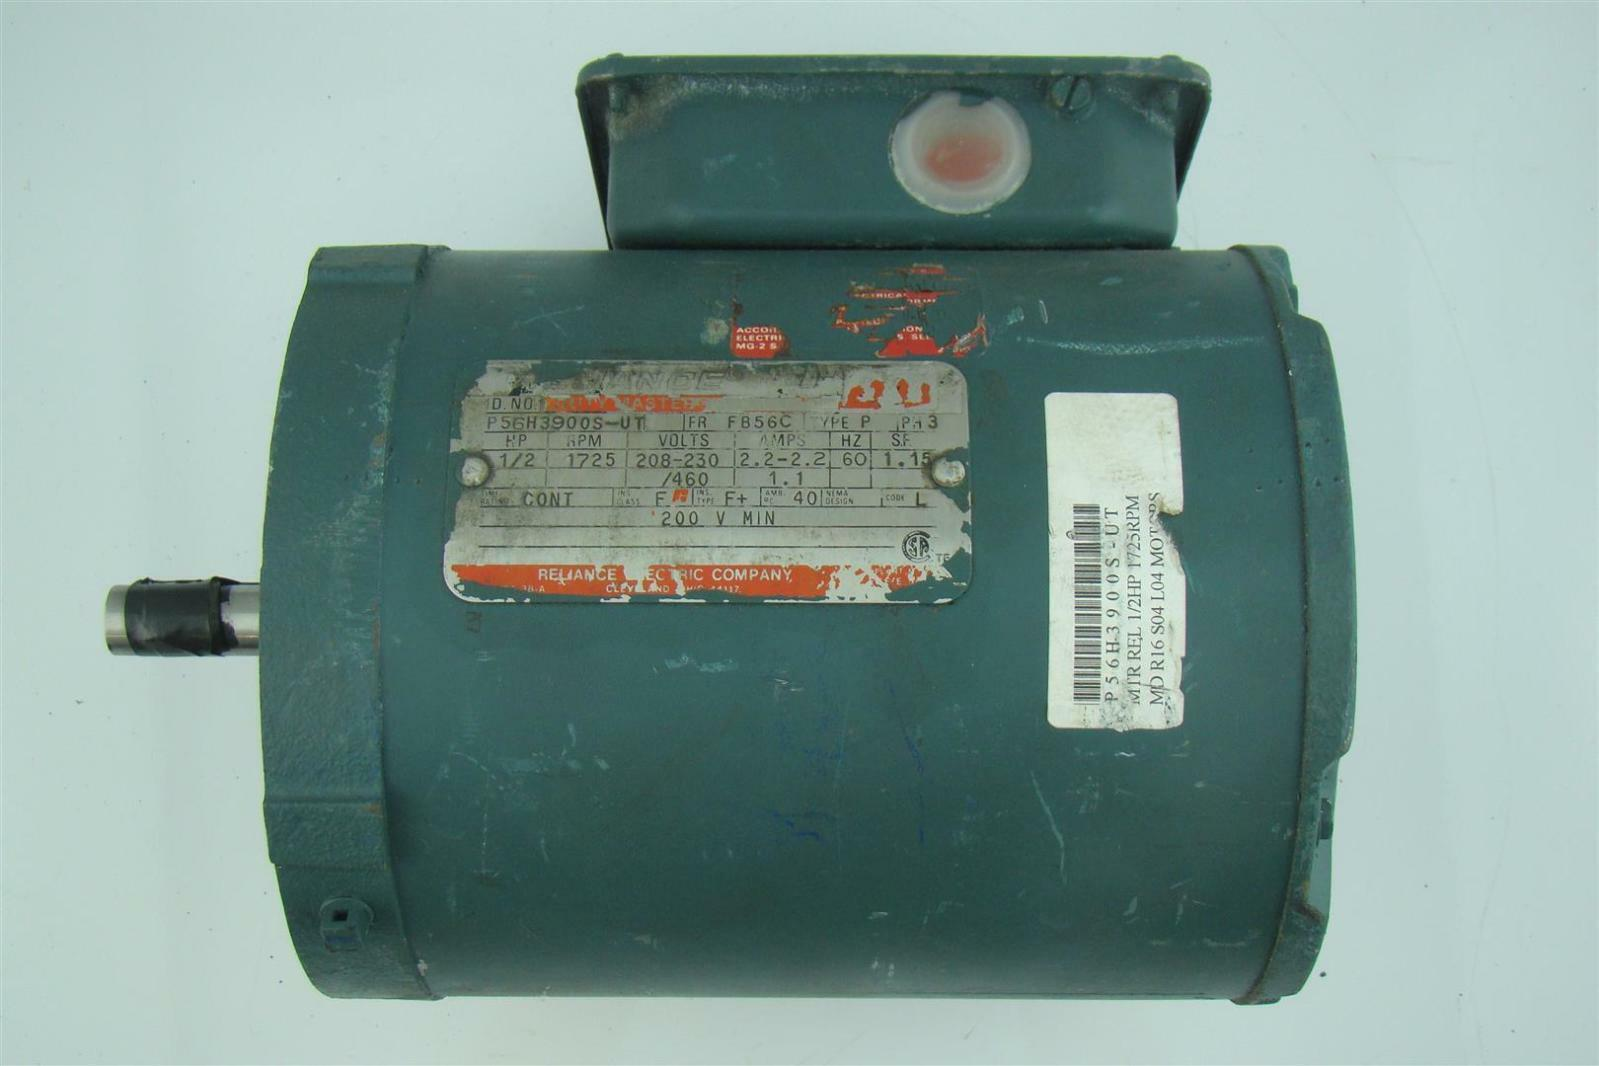 #864938 RELIANCE ELECTRIC COMPANY AC MOTOR 1/2HP 1725RPM 230/460V  Best 3103 Furnace Parts Utah photos with 1599x1066 px on helpvideos.info - Air Conditioners, Air Coolers and more